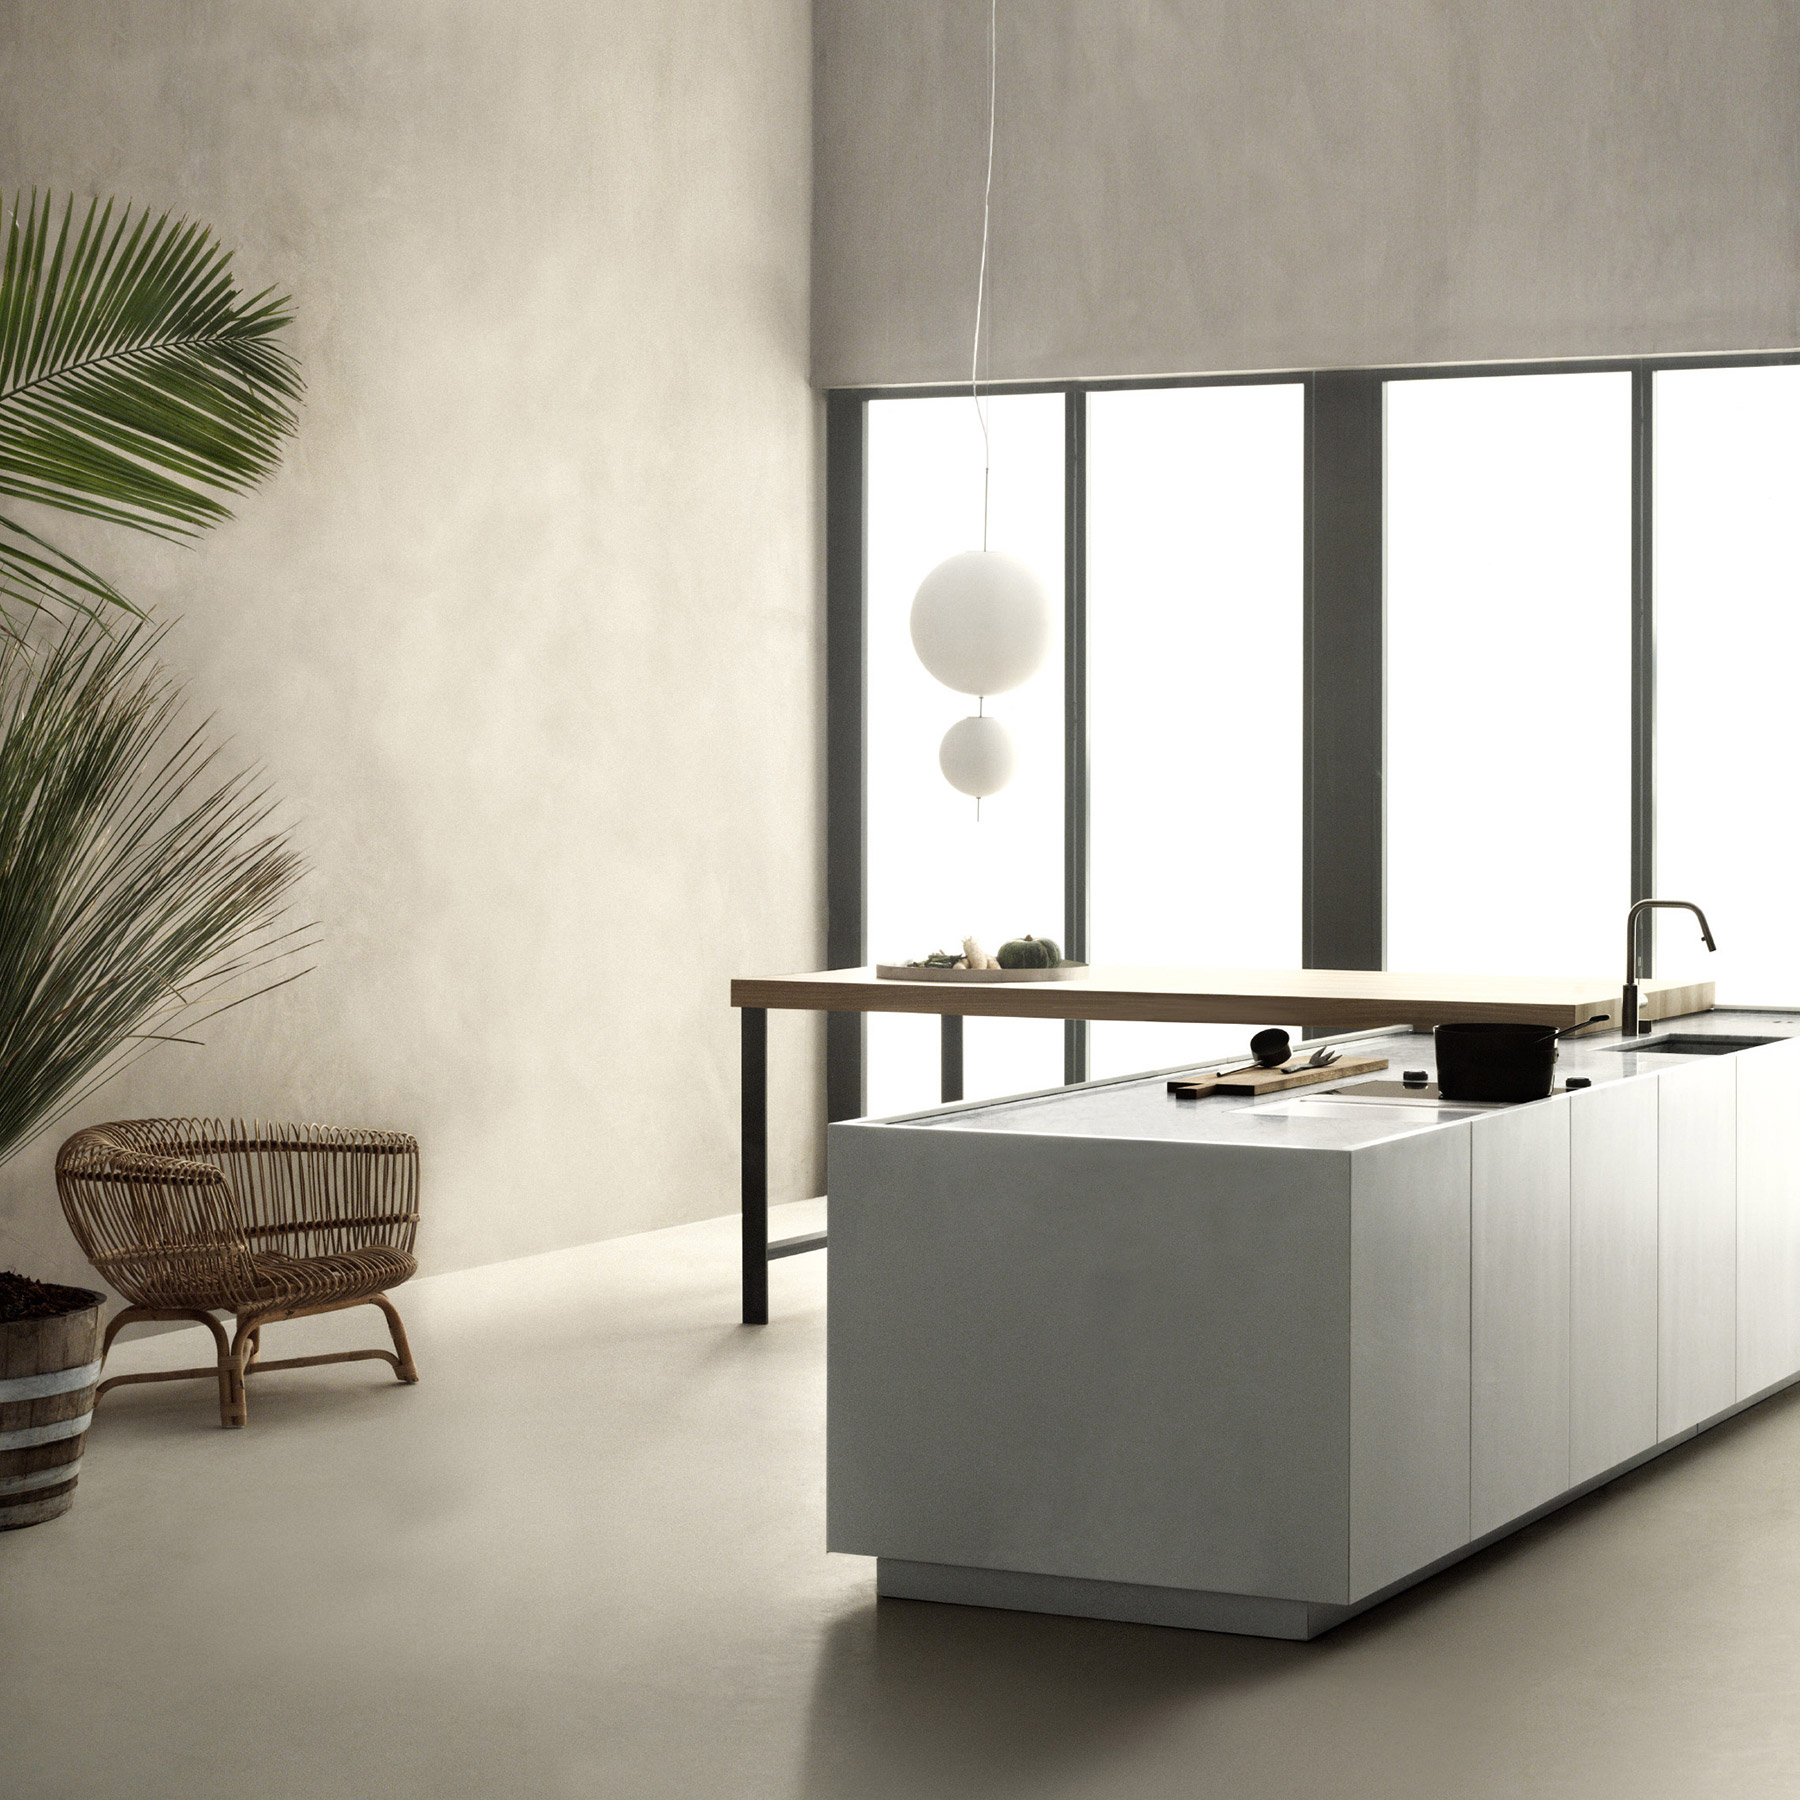 K21 kitchen by Boffi